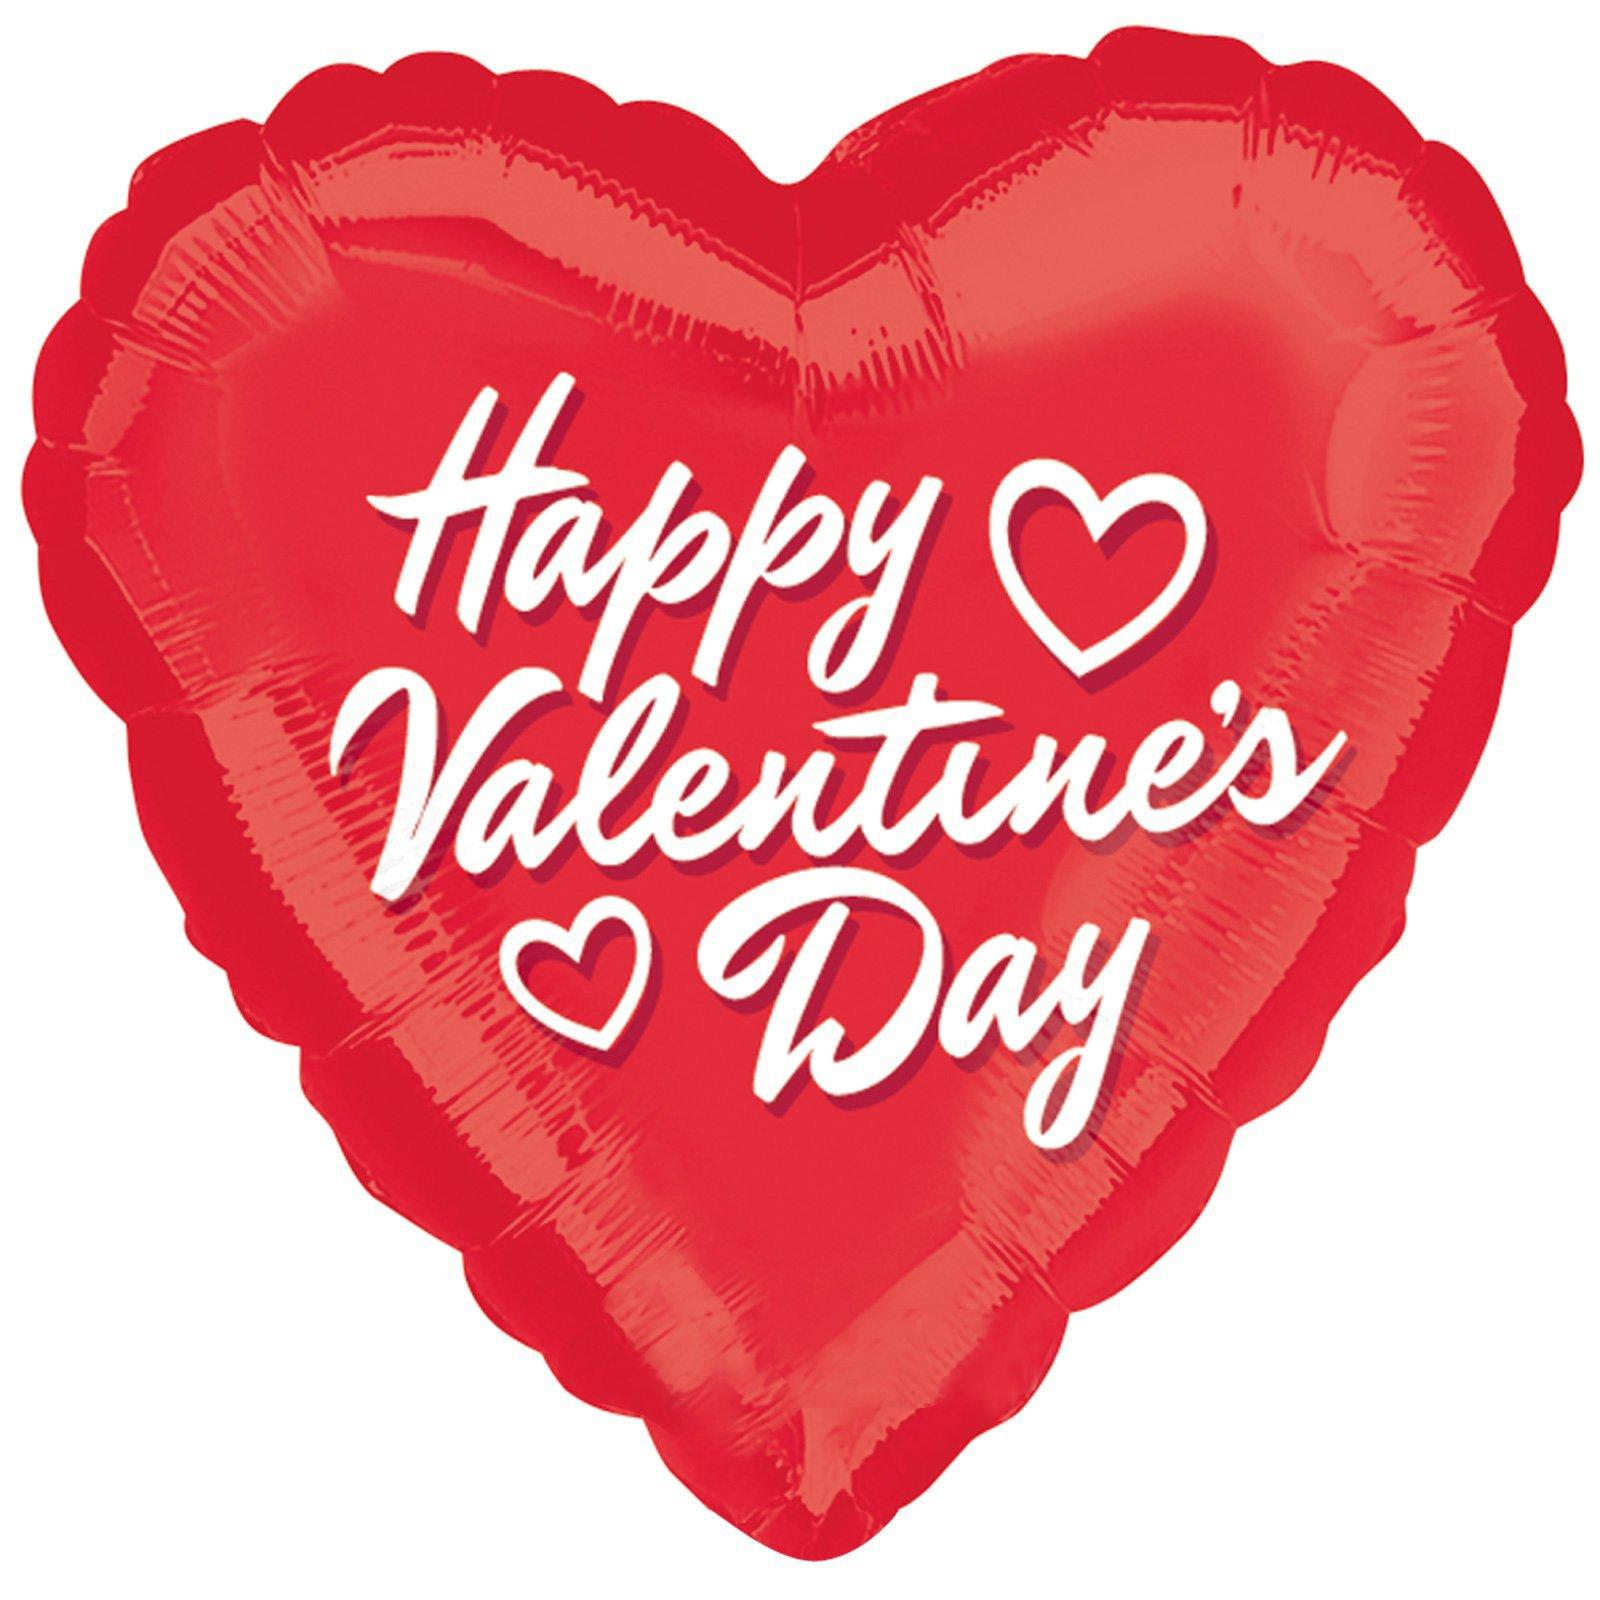 1600x1600 Image Of Happy Valentines Day Clipart 0 Happy Valentines Day